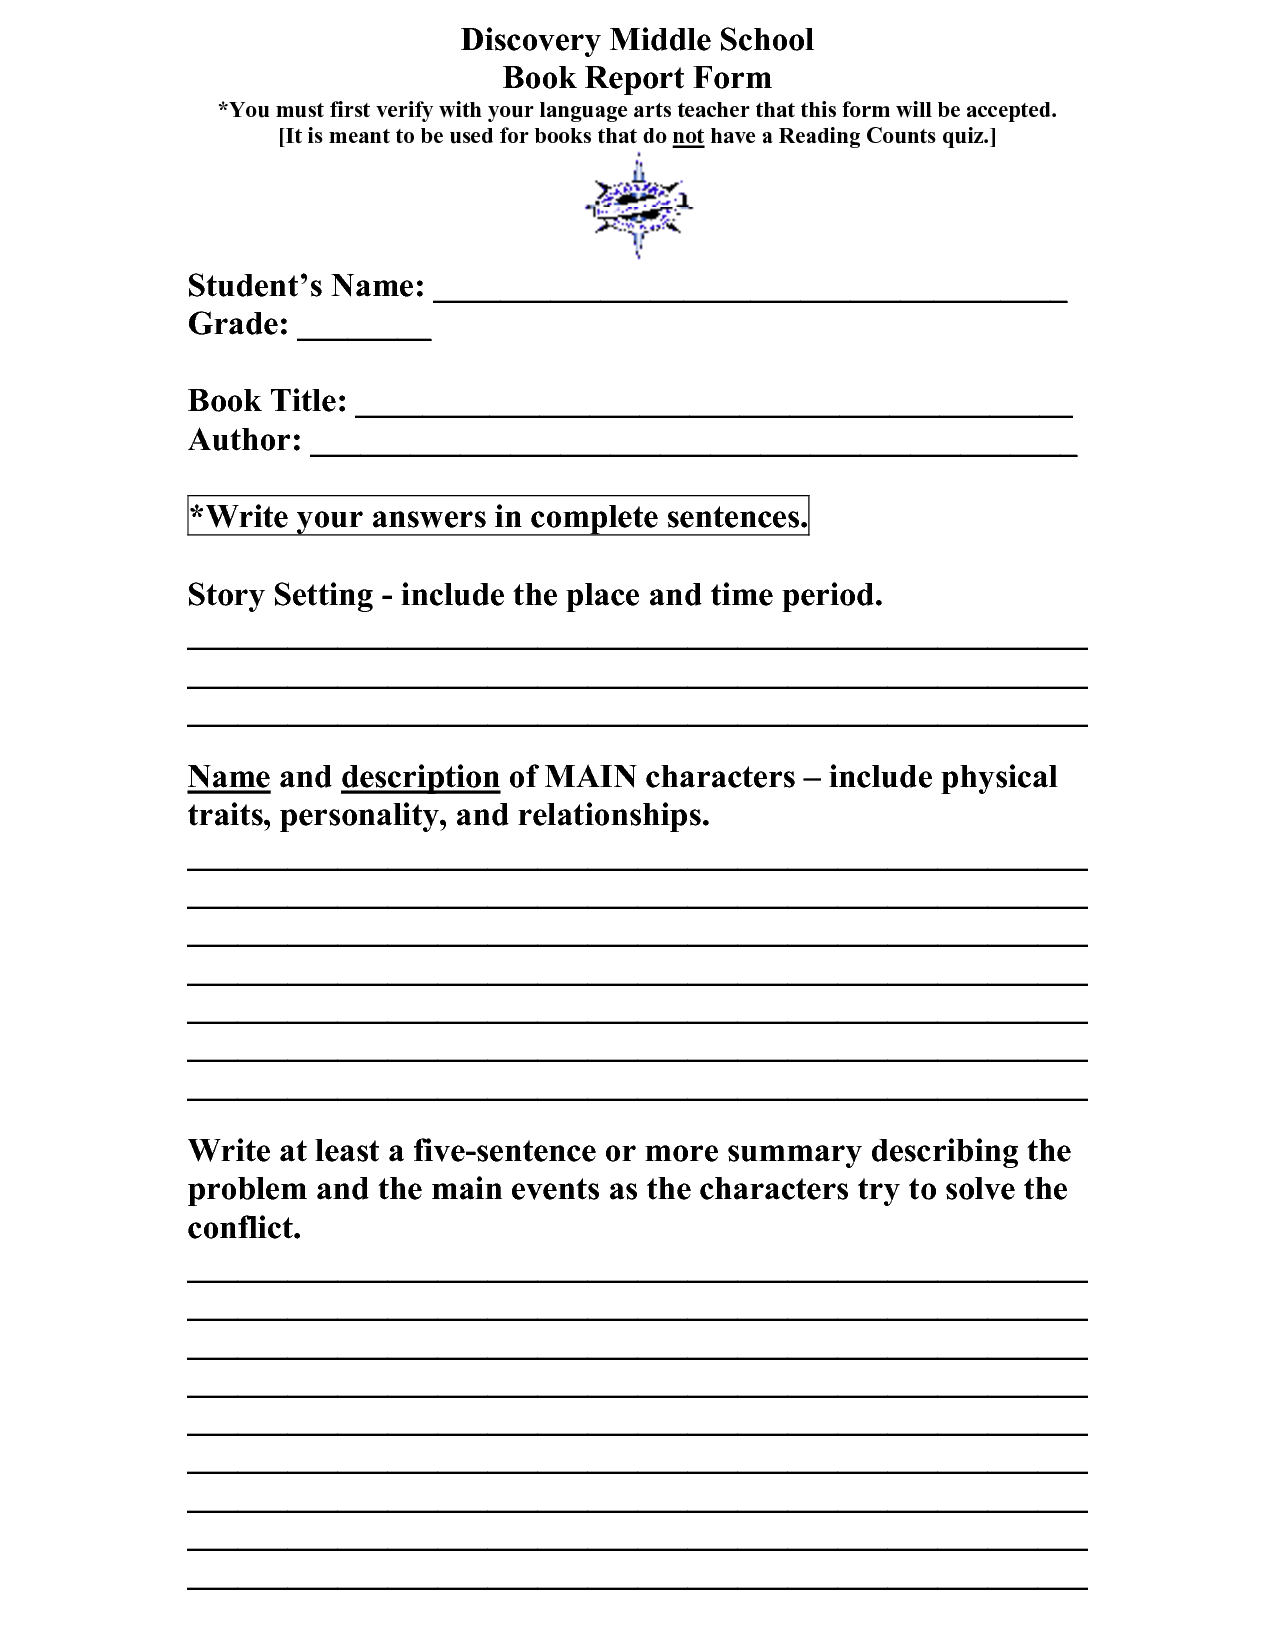 scope of work template teaching learning book report templates